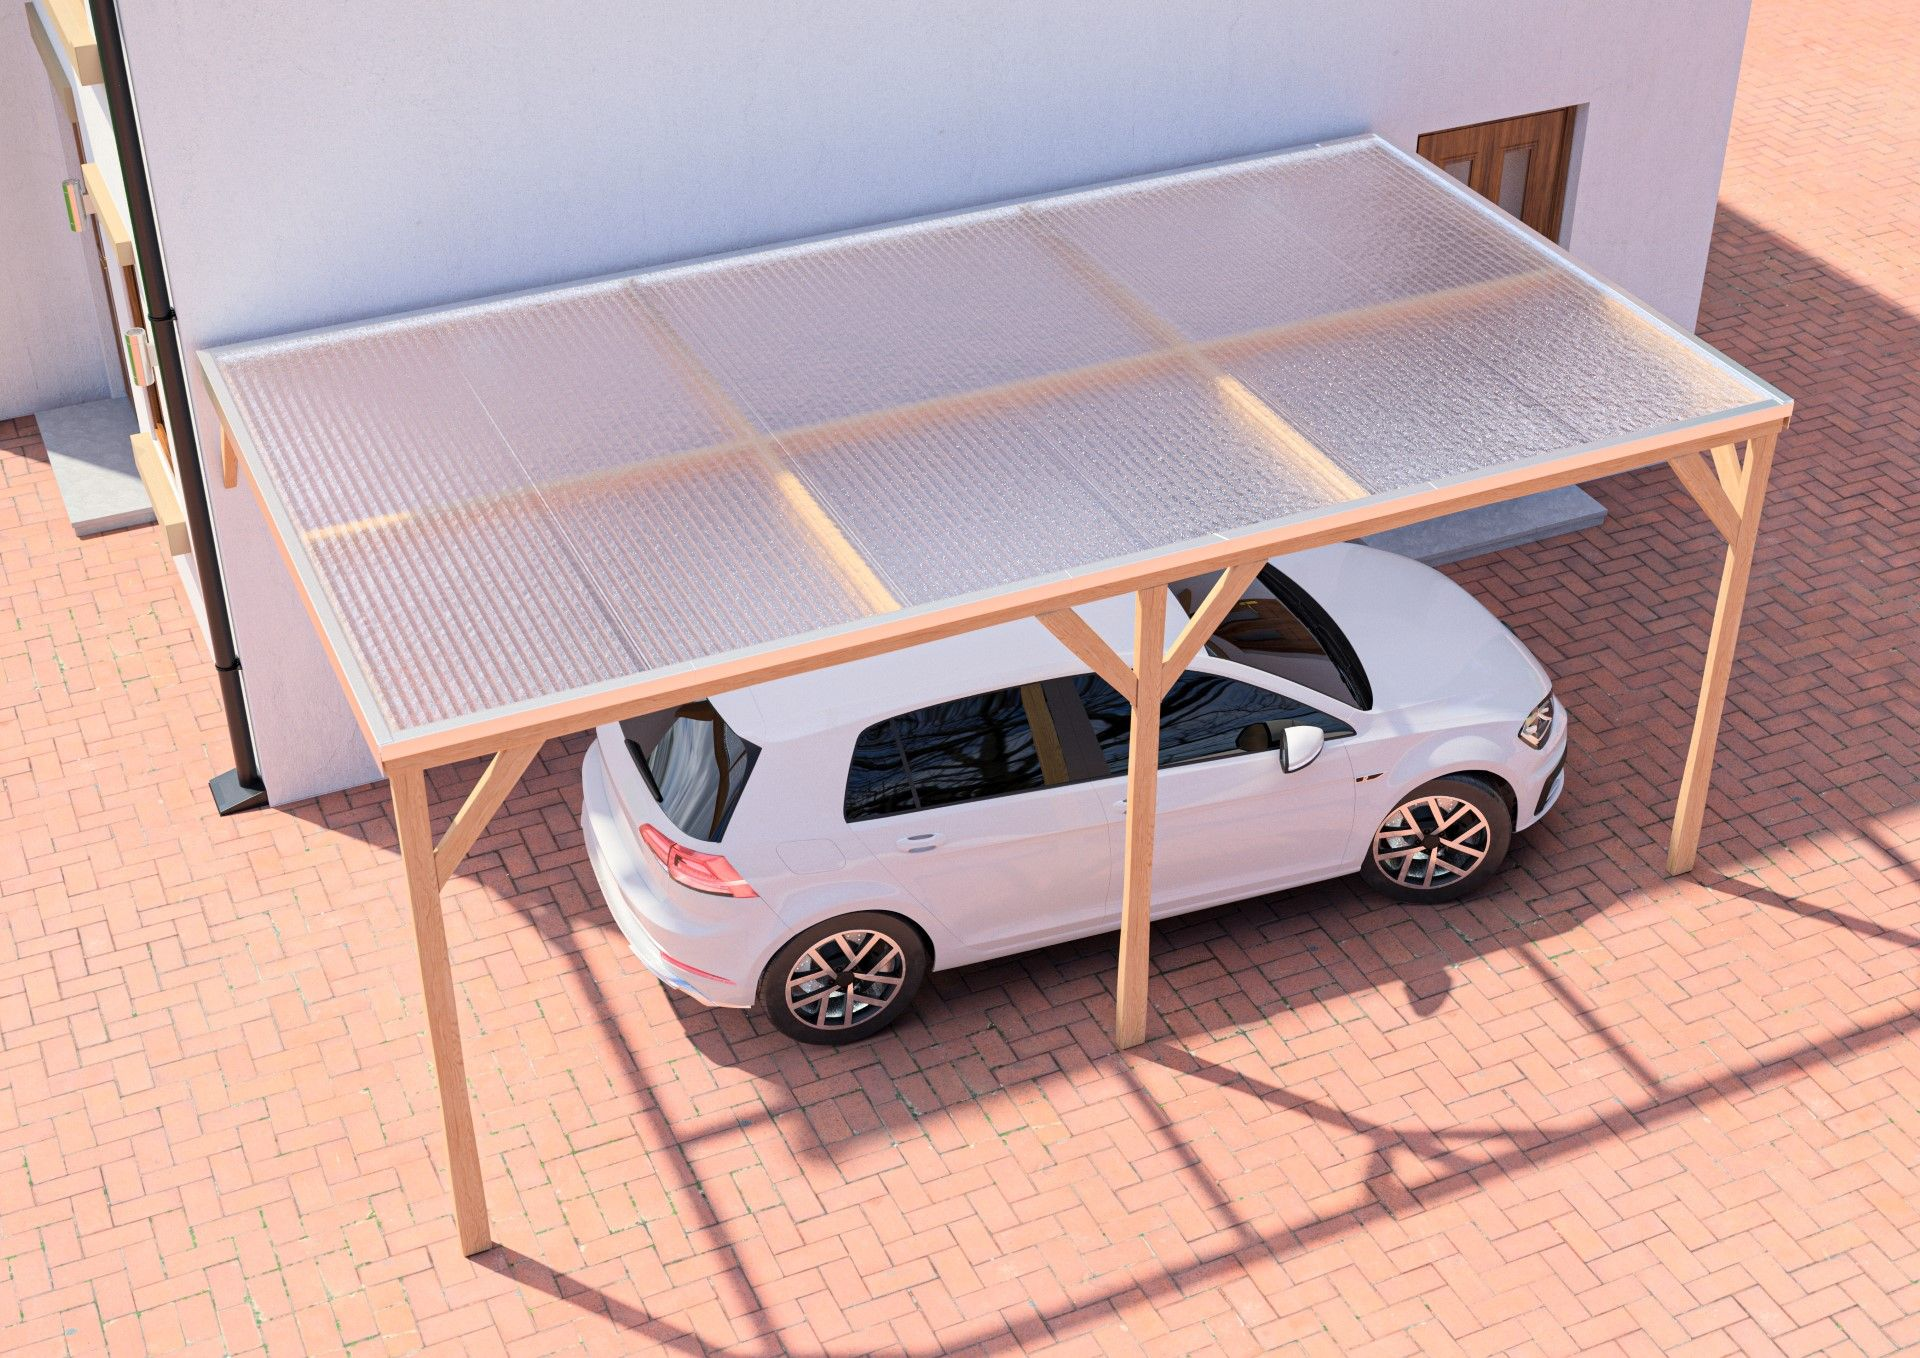 Simple carport roof in 2020 Polycarbonate roof panels